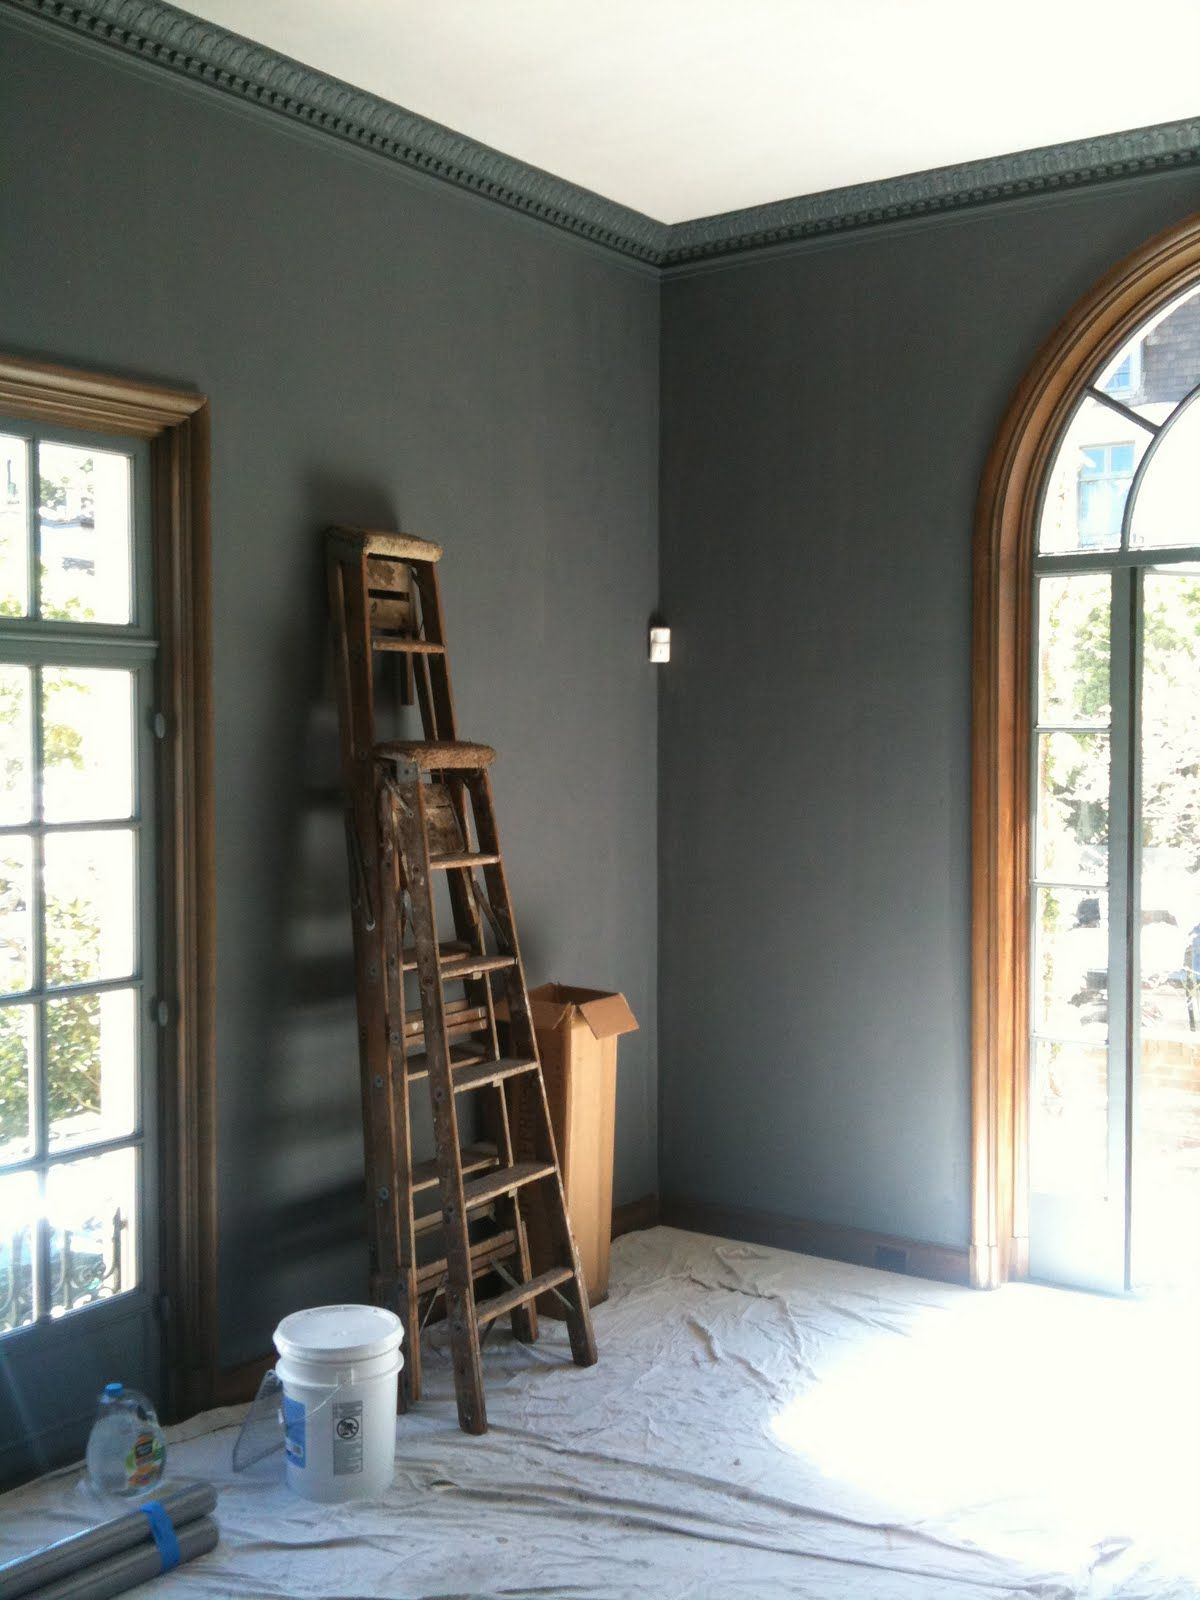 Crown Molding Painted The Same Color As Walls Make Ceilings Look Taller While Adding Texture